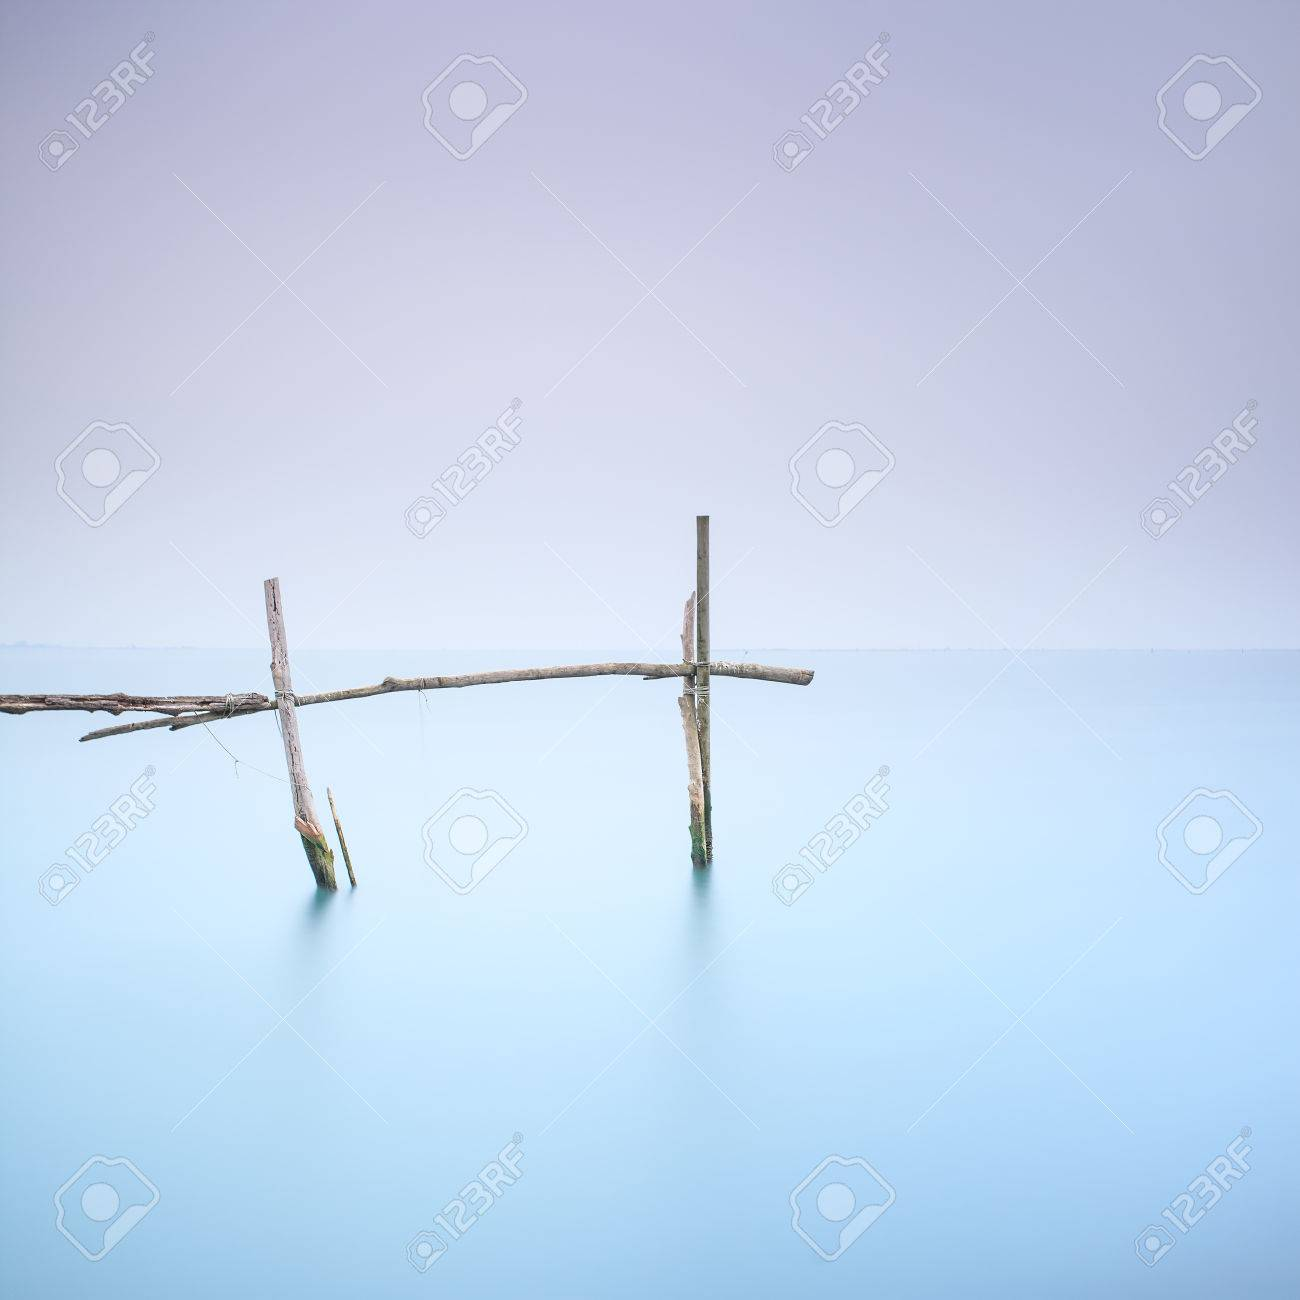 Fishing poles for clams and mussels and soft water on a quiet foggy landscape  Long exposure photography Stock Photo - 27911538